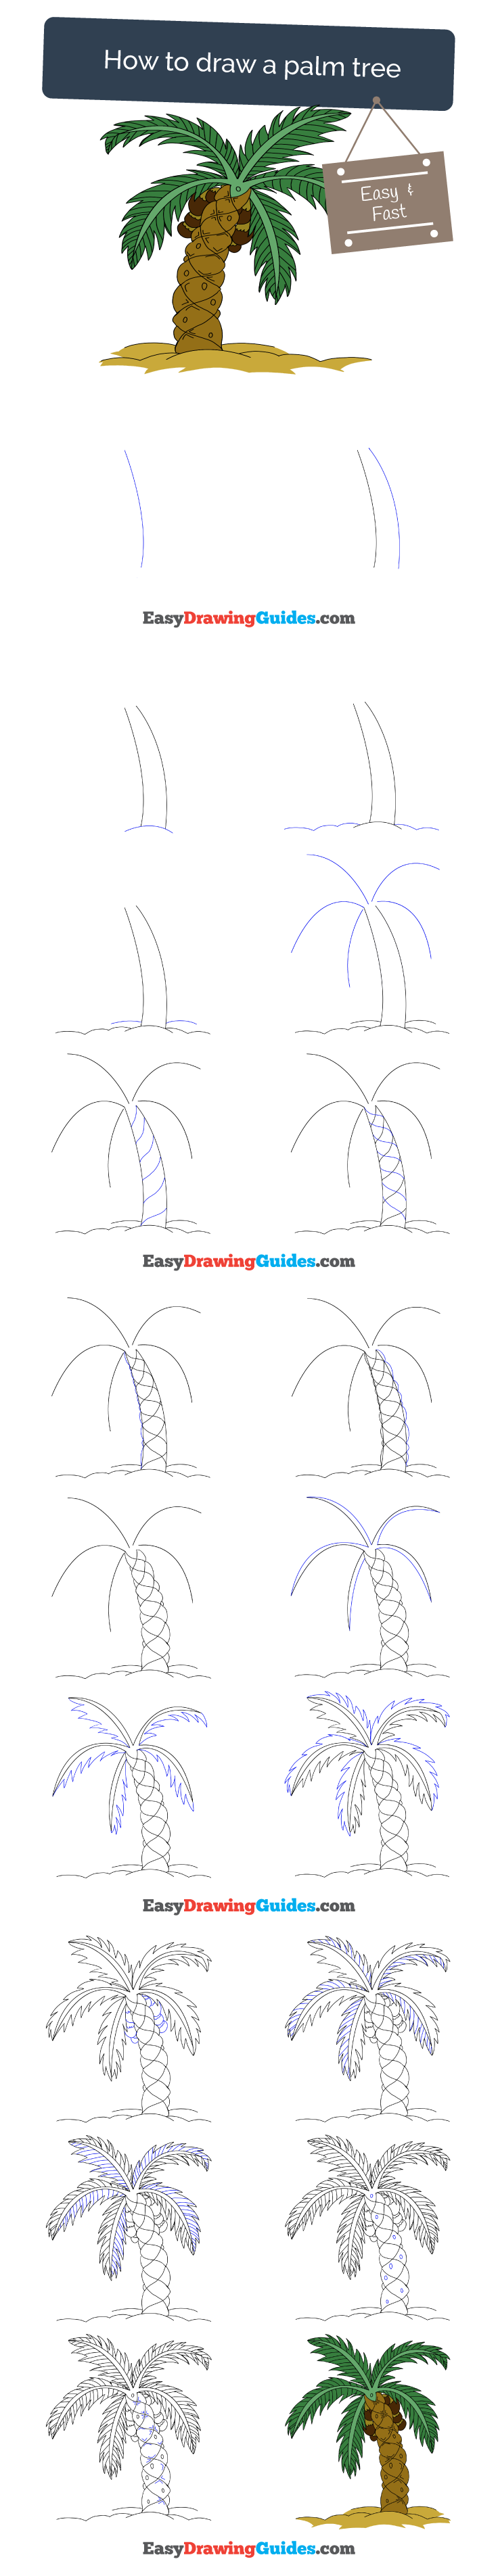 736x3810 how to draw a palm tree easy and simple guide palm, draw - Palm Tree Drawing Steps